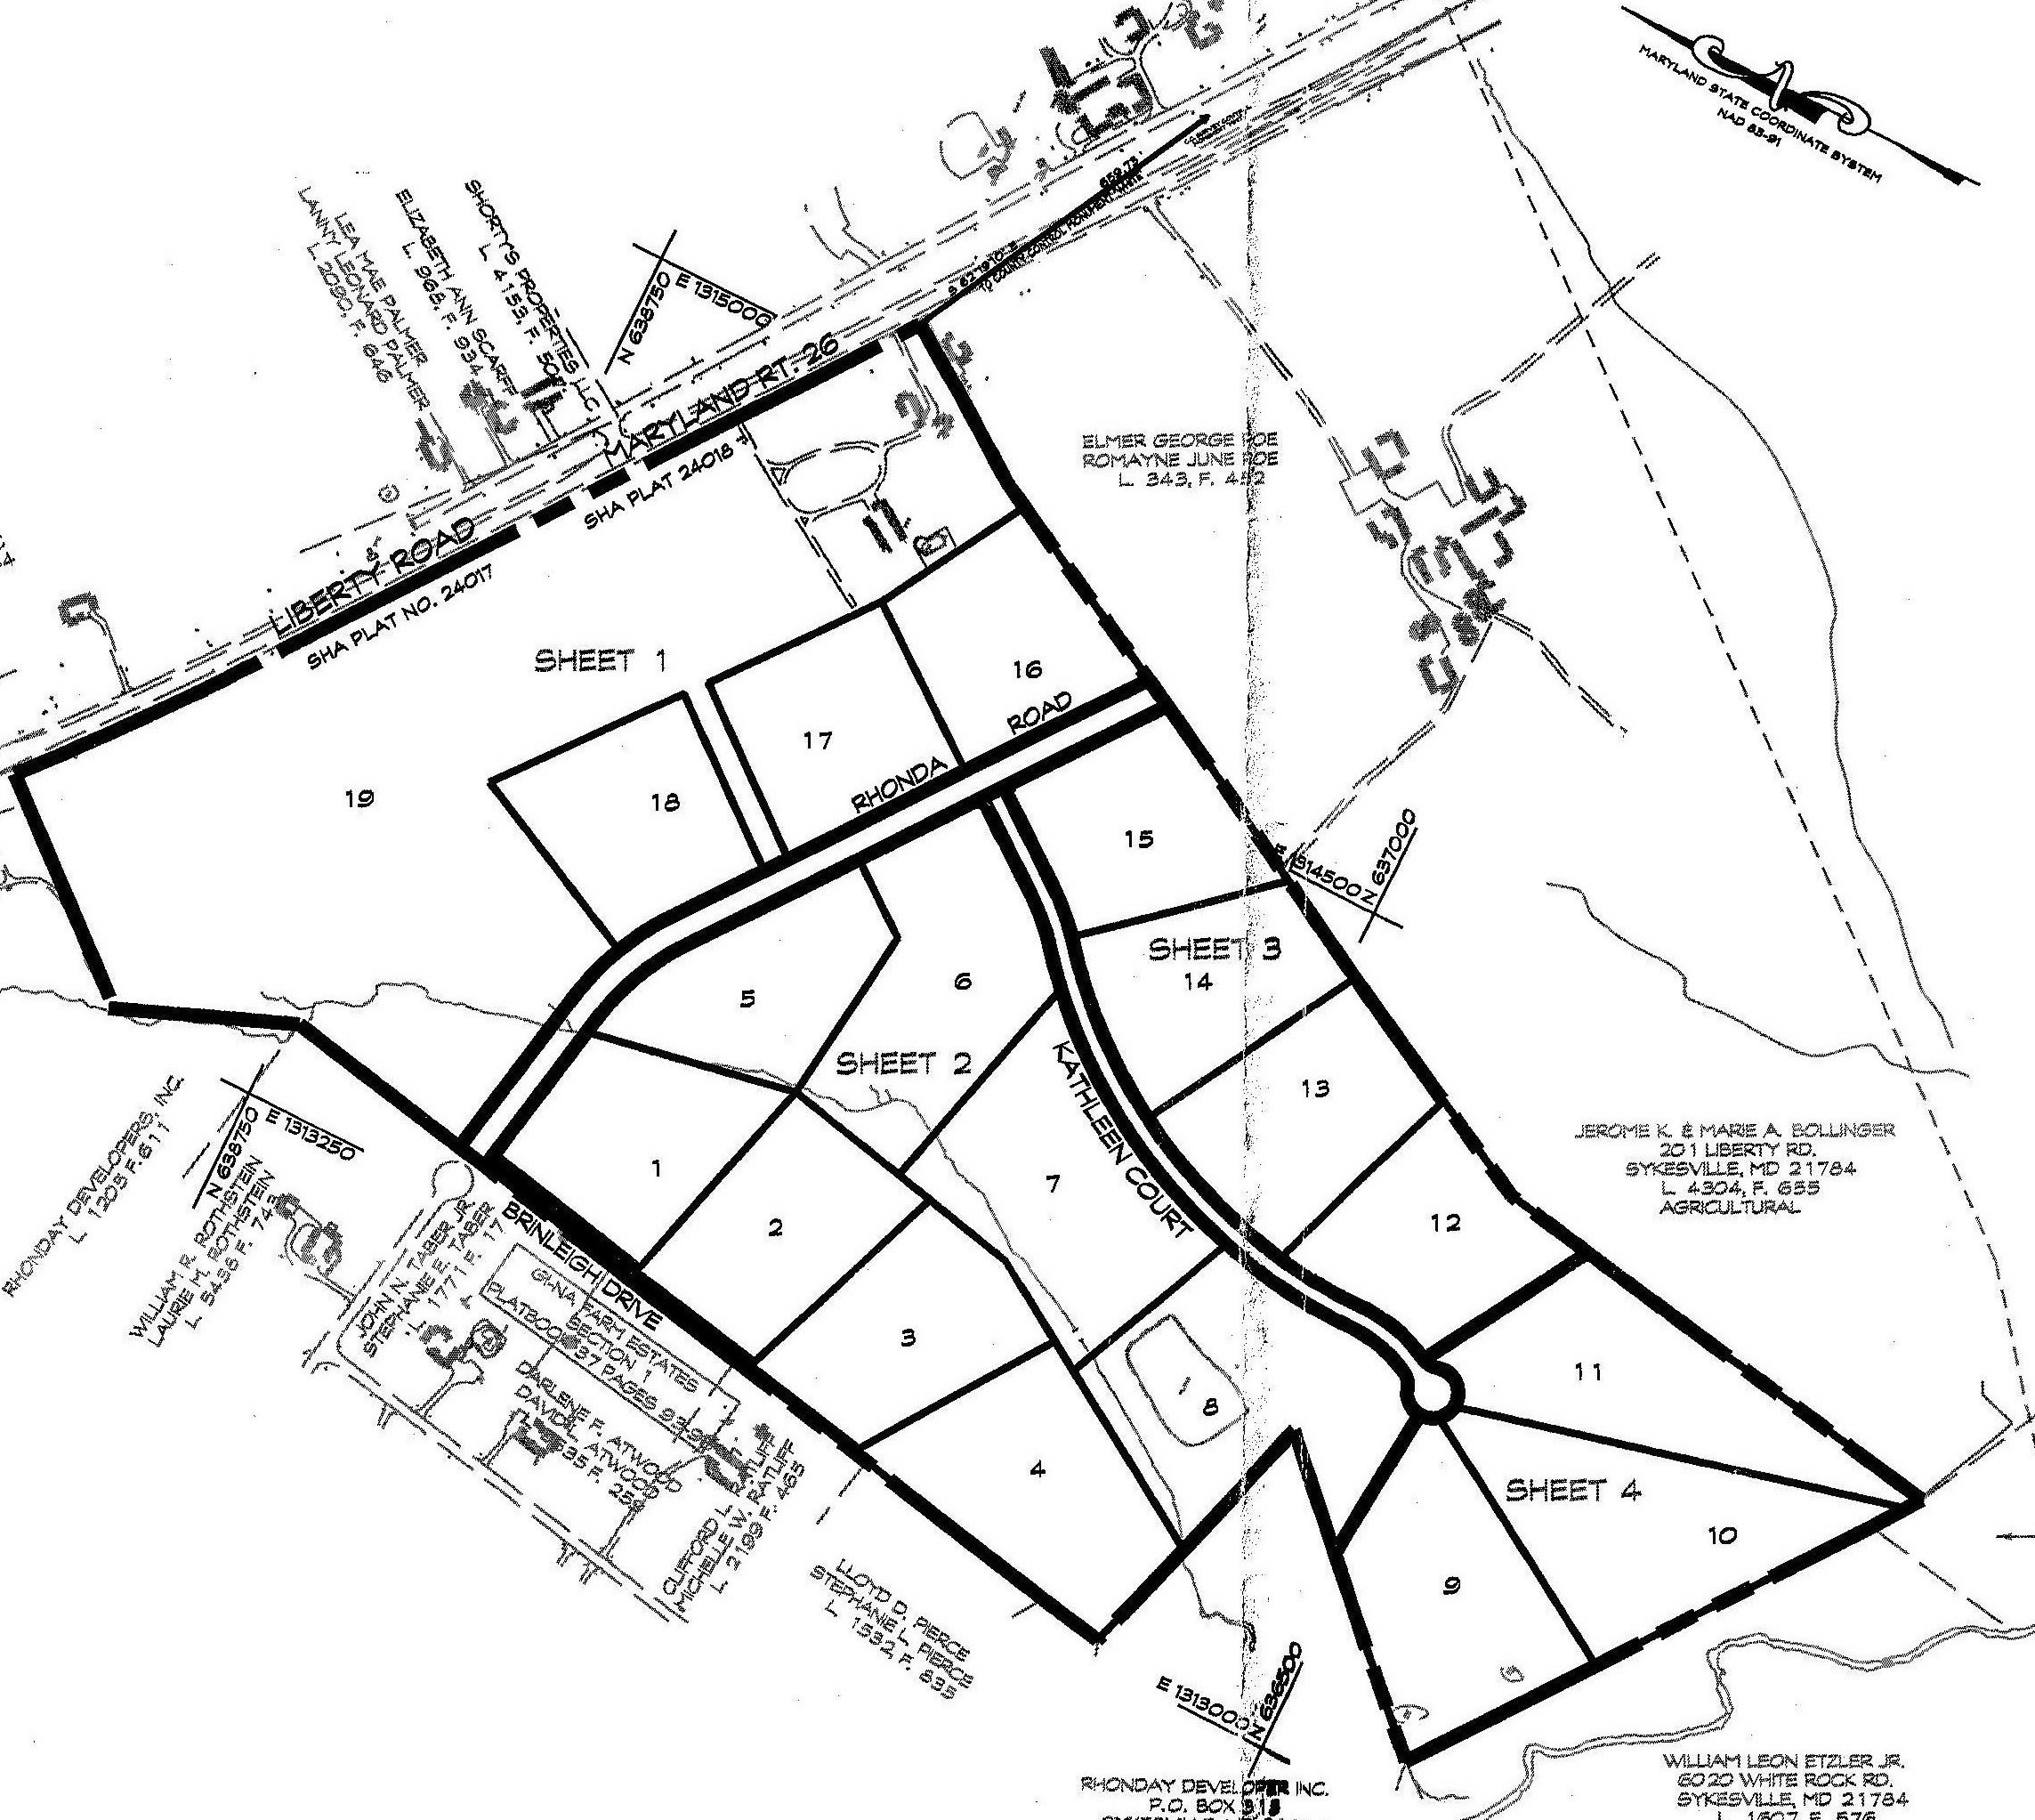 Site plan for Long Reach Farms